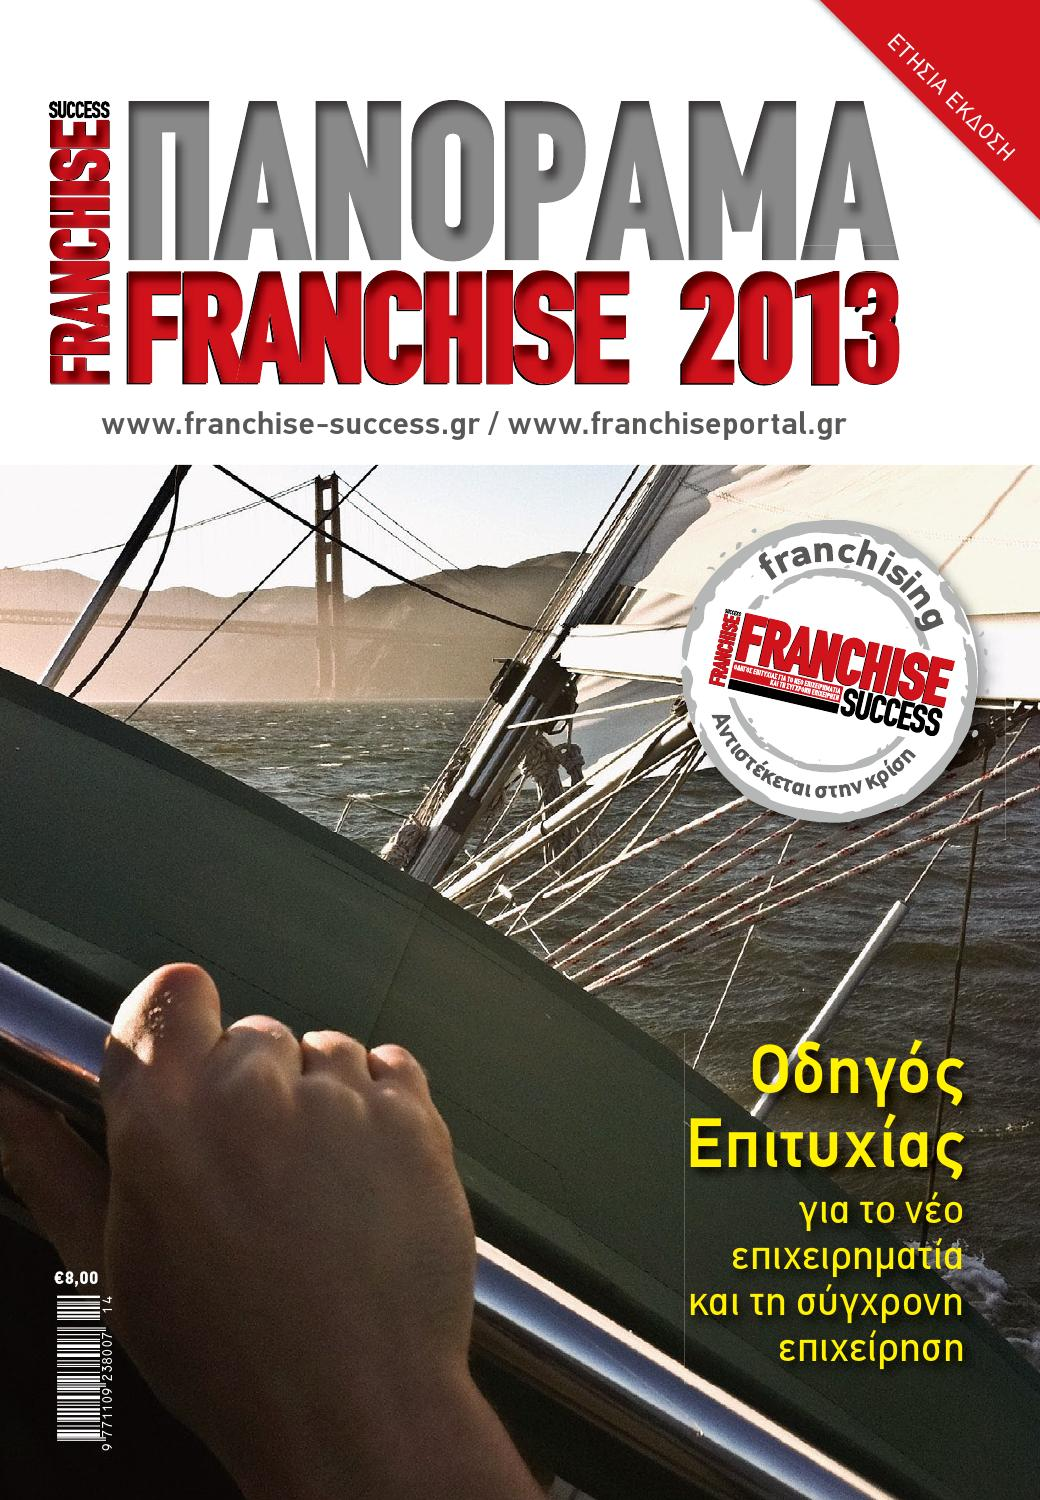 FRANCHISE SUCCESS Ετήσιος Οδηγός ΠΑΝΟΡΑΜΑ FRANCHISE 2013 by franchise  success - issuu 365b3aafcf2